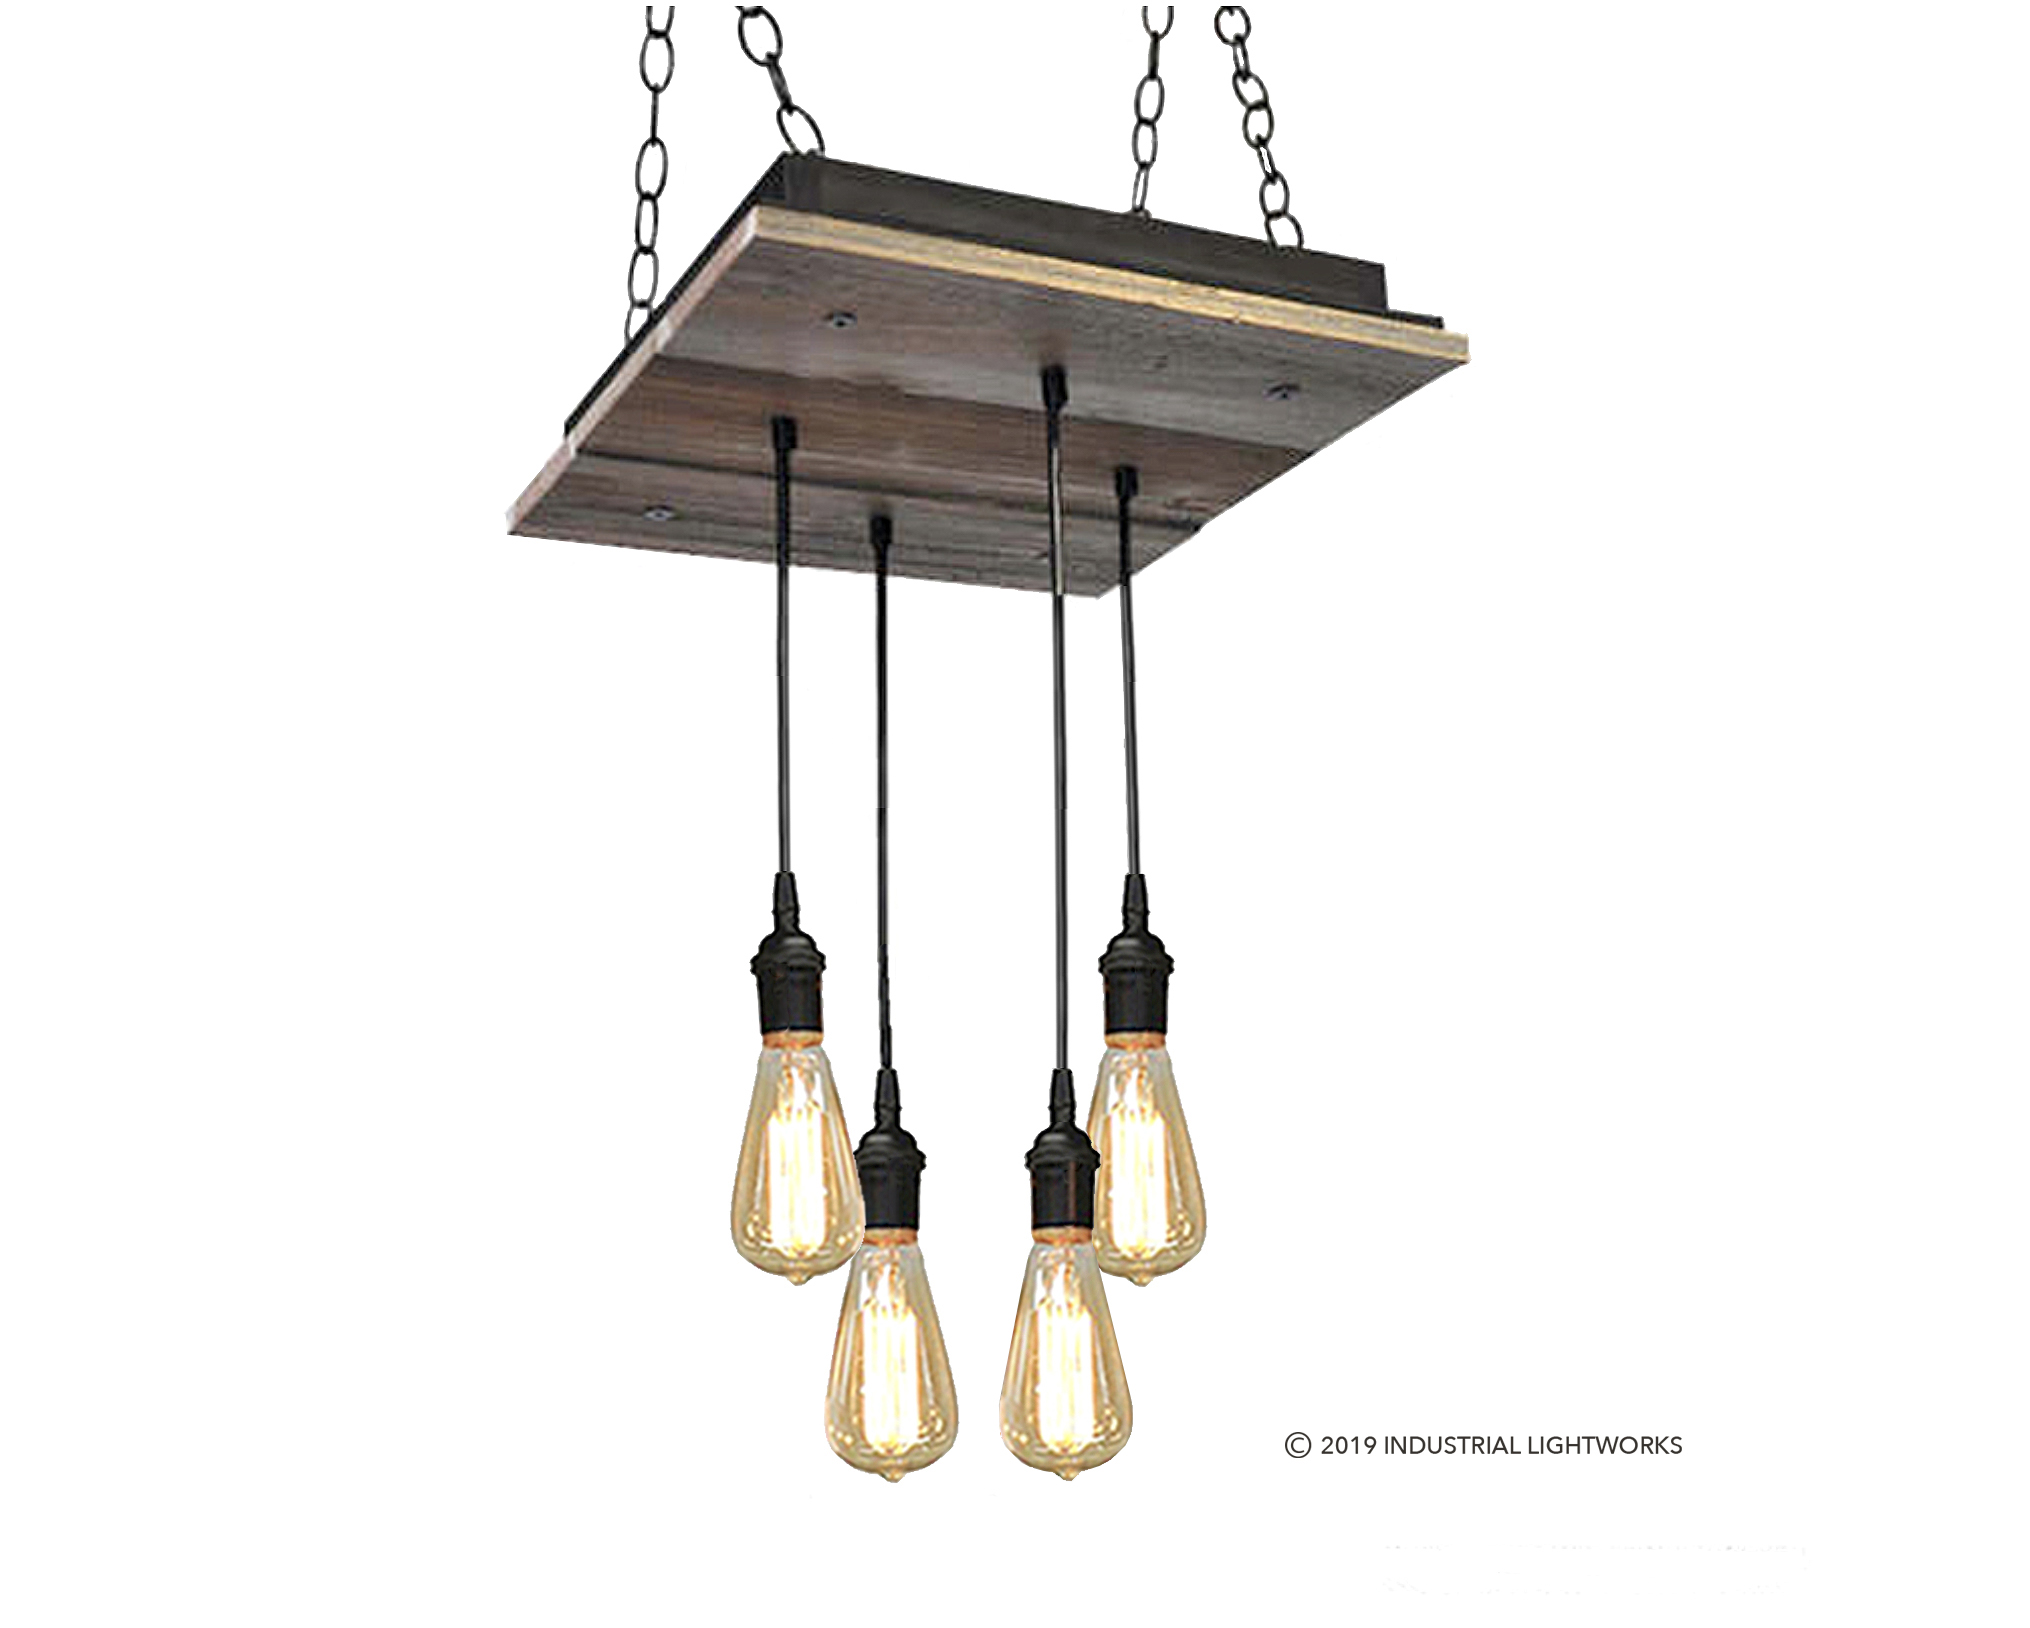 4 Light - Reclaimed Wood Chandelier